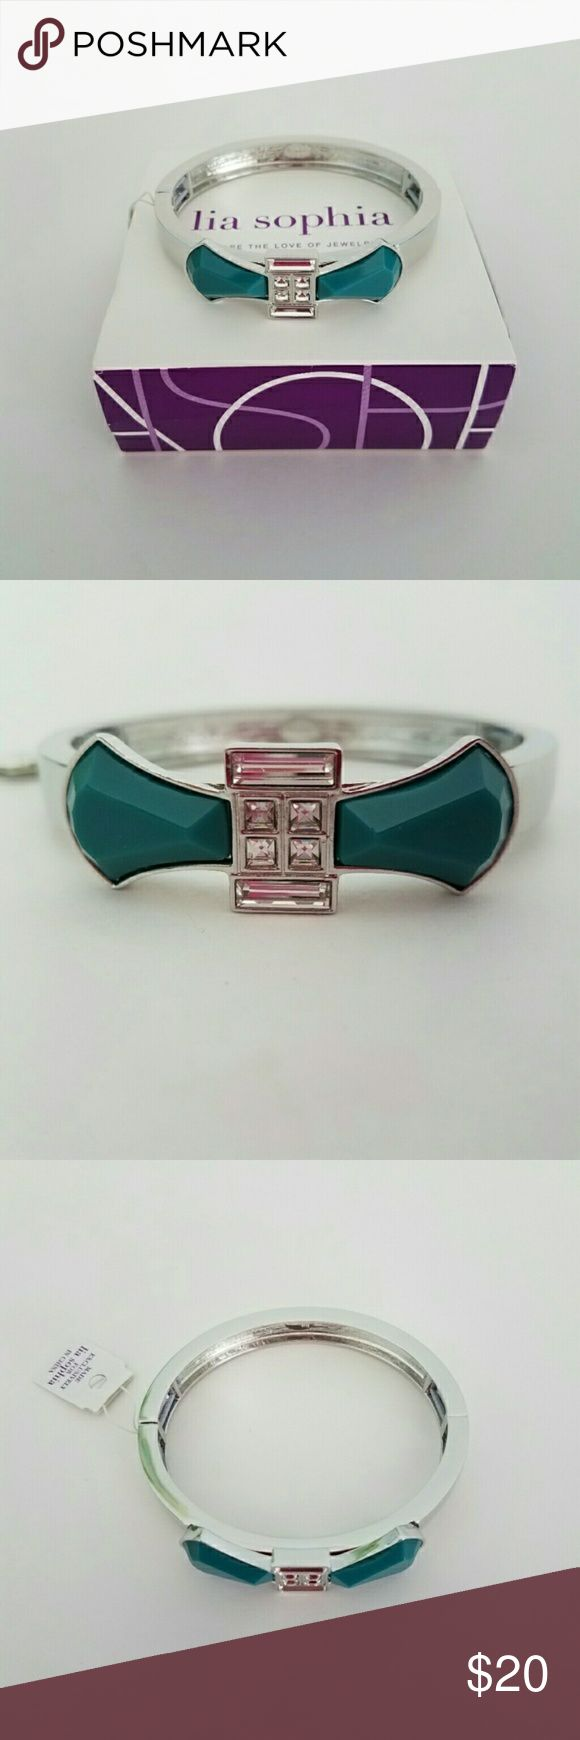 Lia Sophia Turquoise & Silver Colored Bow Bracelet Hi! Thank you so much for stopping by my closet! I hope you'll find something you love! This beautiful bracelet stretches to fit. Please let me know if you have any questions! Much love,  Christine Lia Sophia Jewelry Bracelets